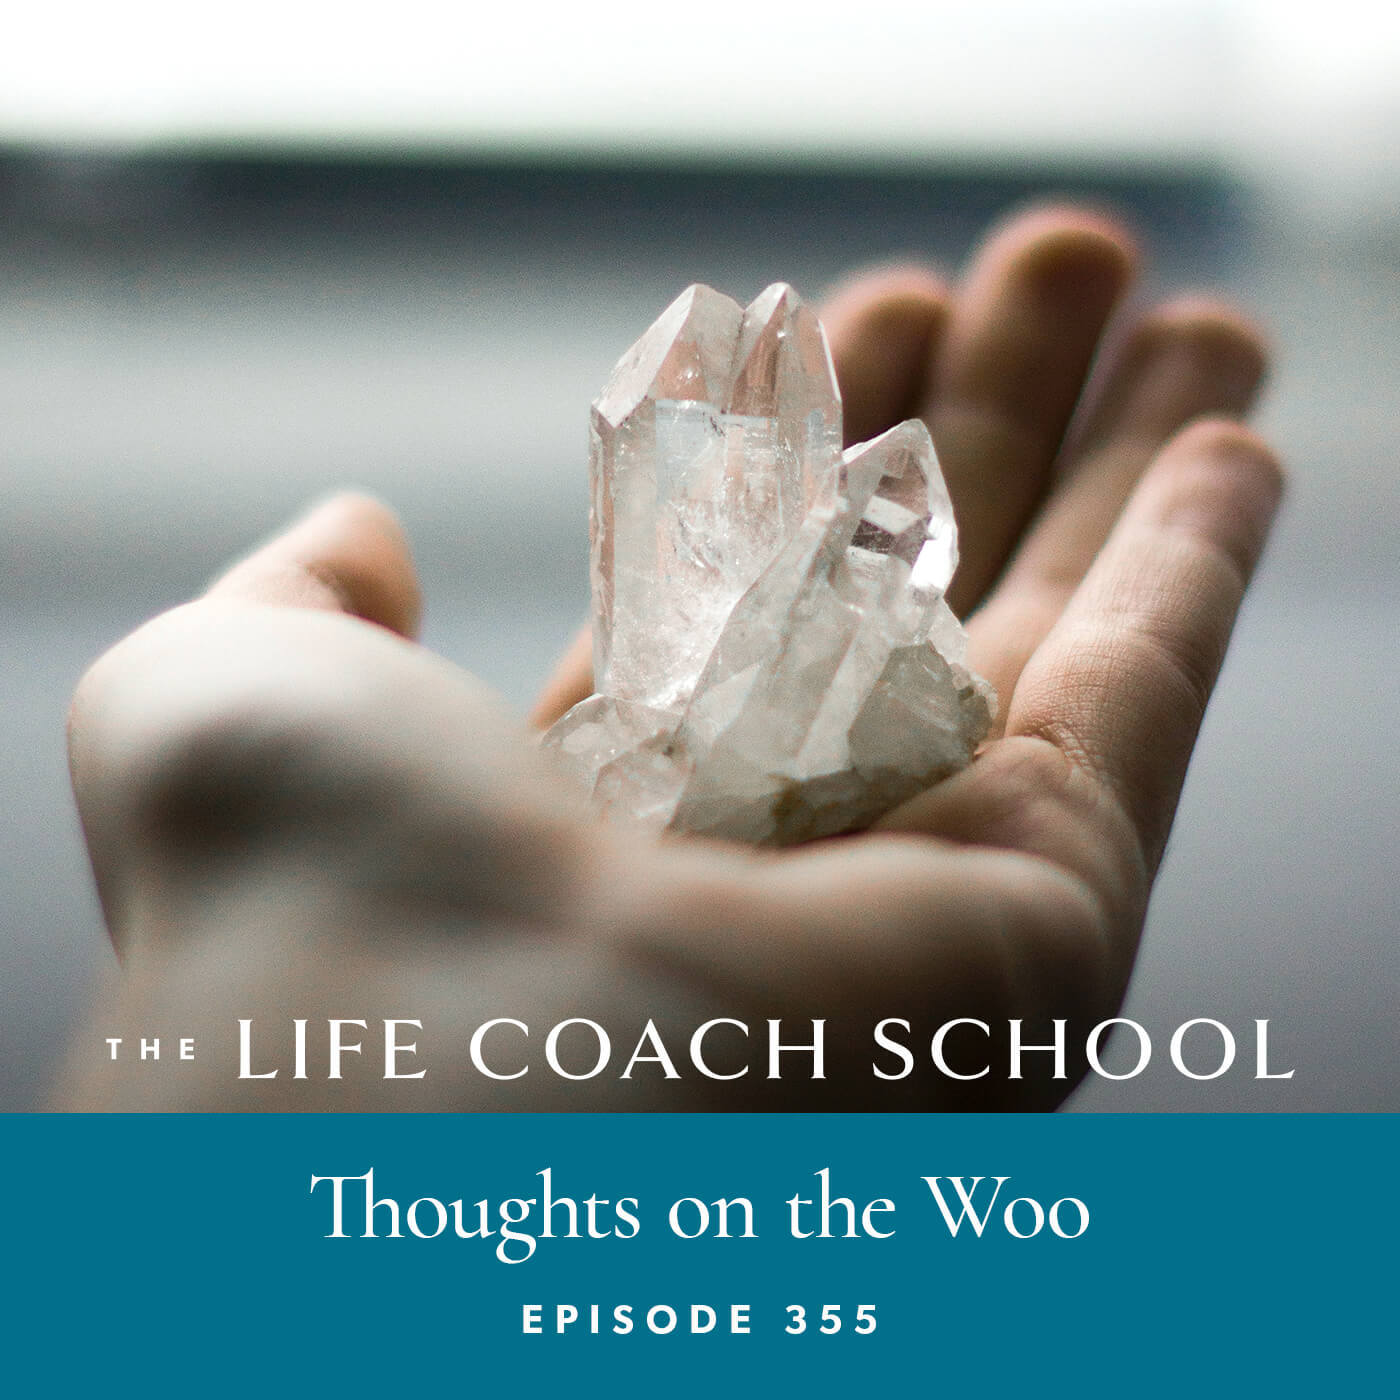 The Life Coach School Podcast with Brooke Castillo | Thoughts on the Woo